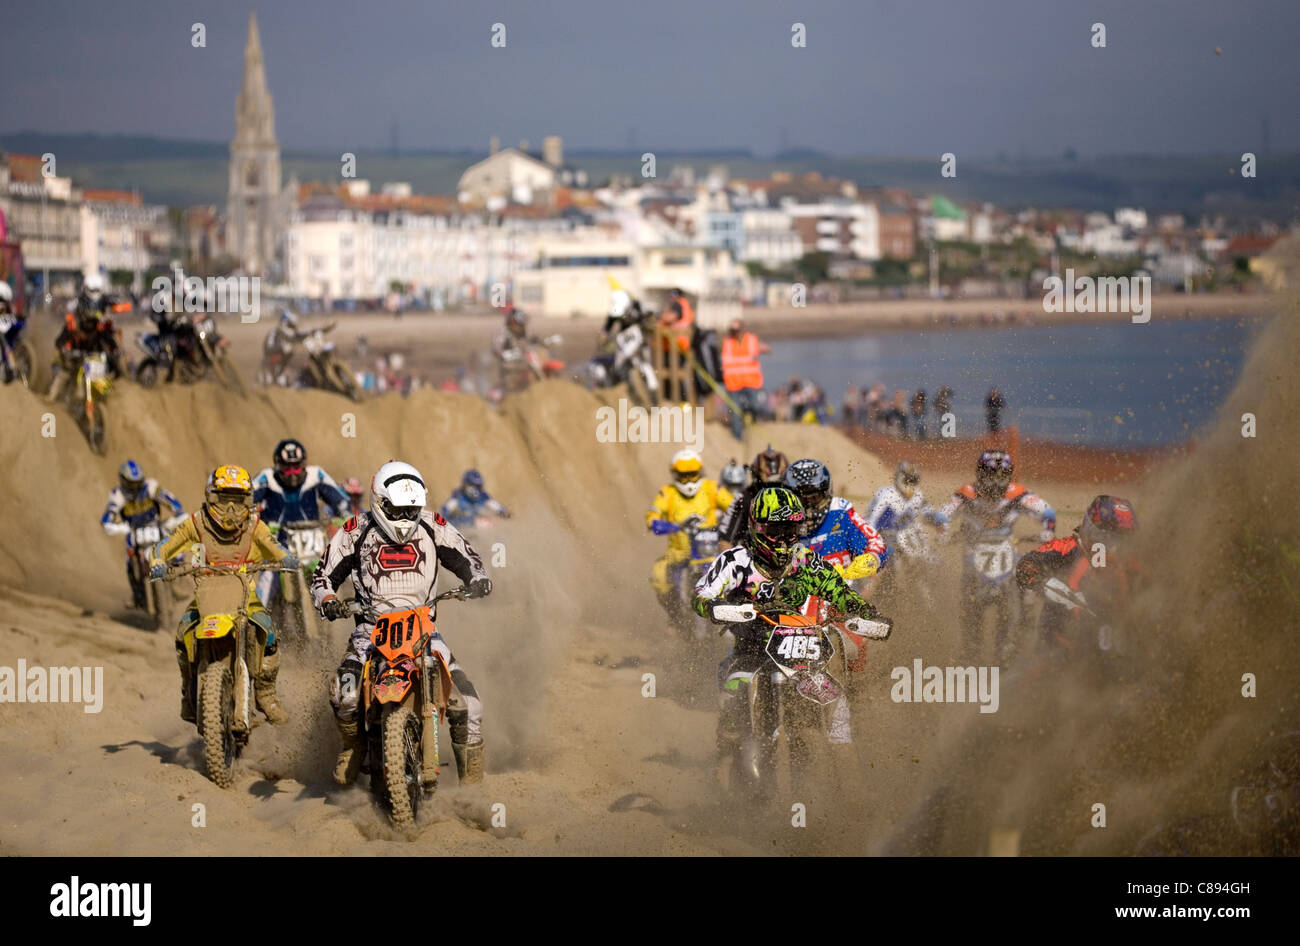 weymouth beach motorcross october 16th 2011 - Stock Image